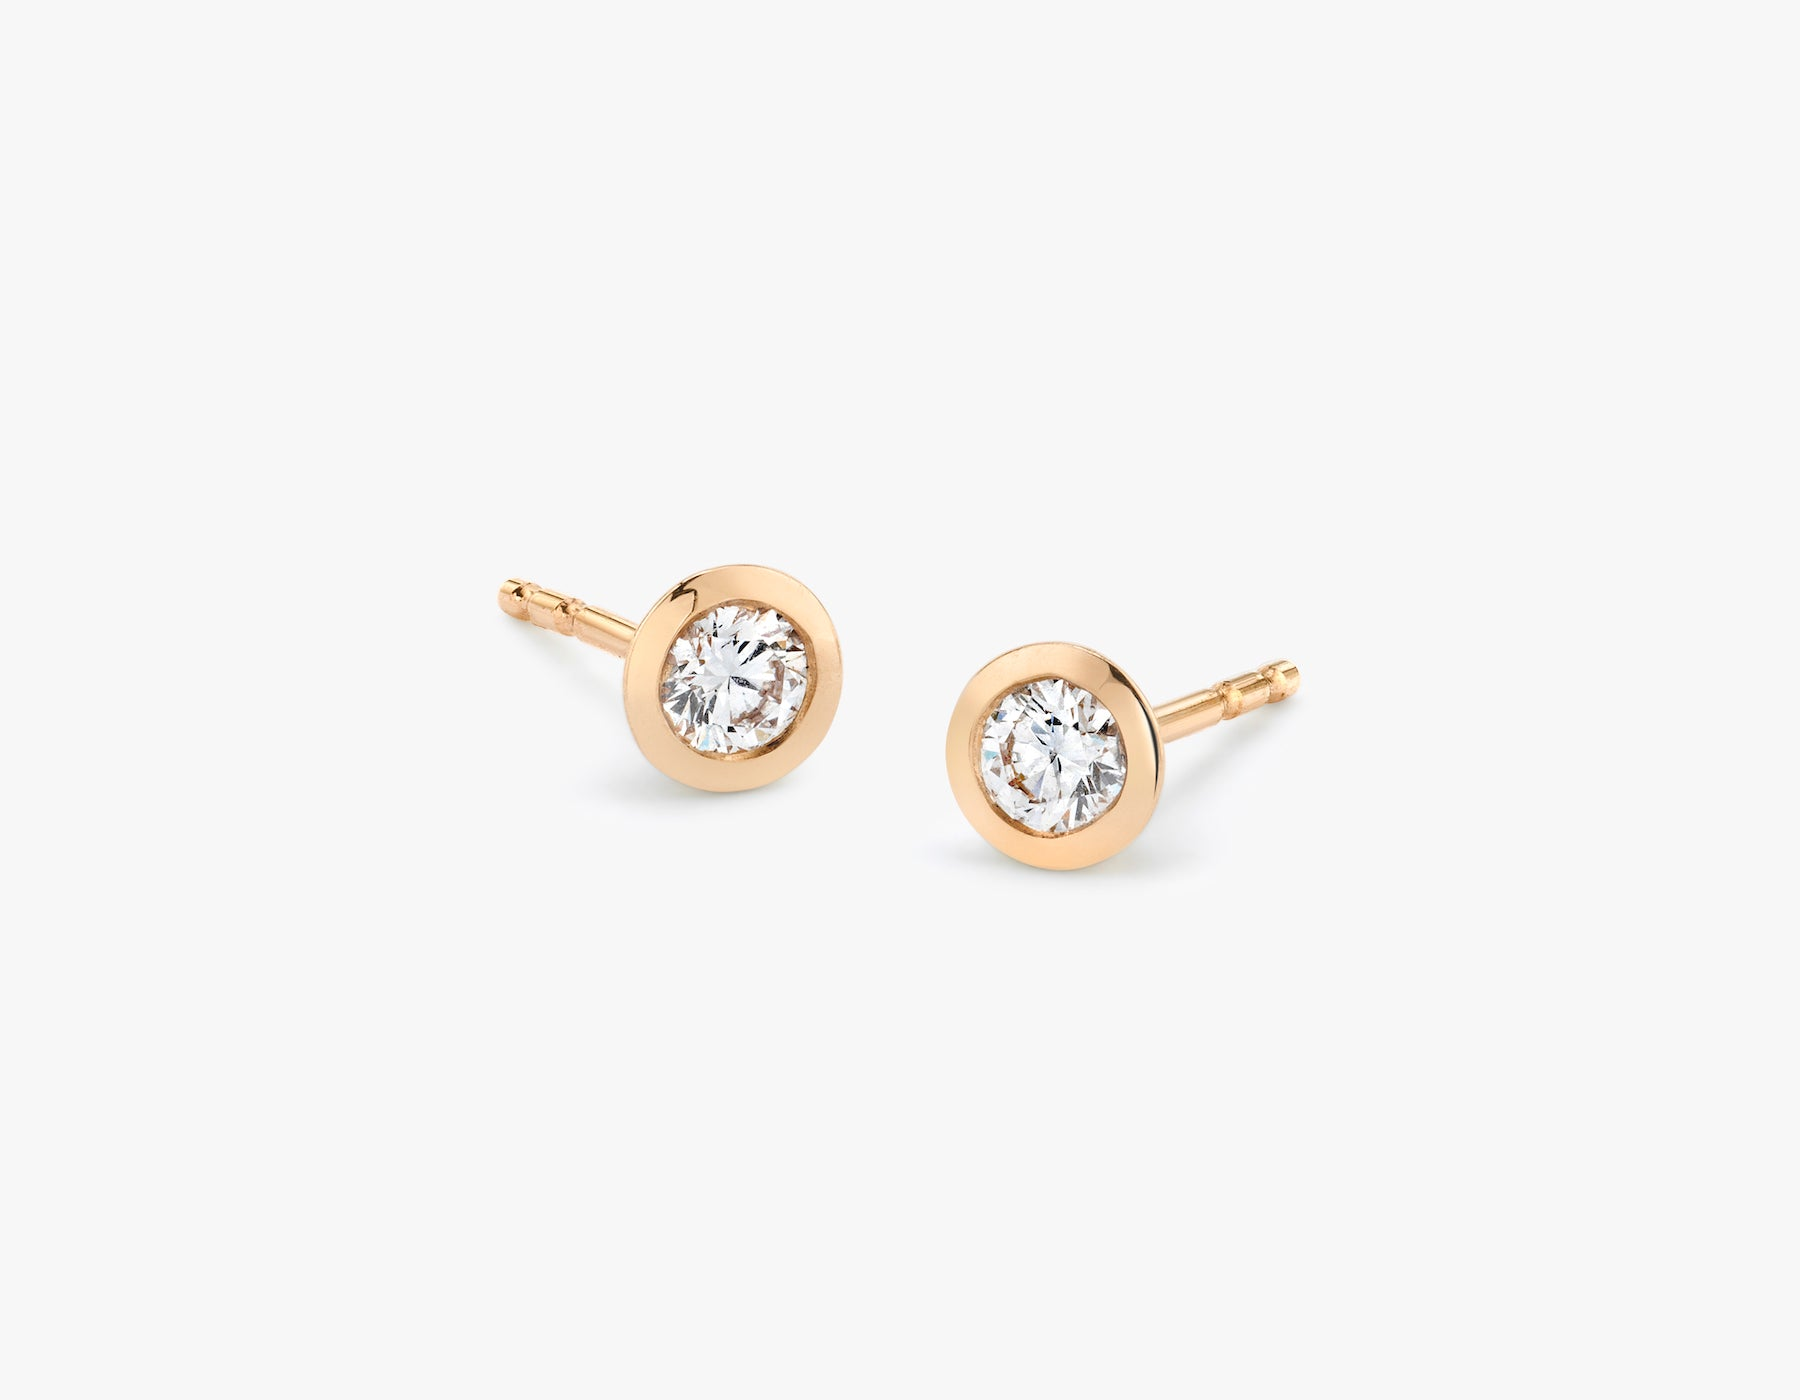 Vrai simple minimalist Round Diamond Bezel Earrings, 14K Rose Gold